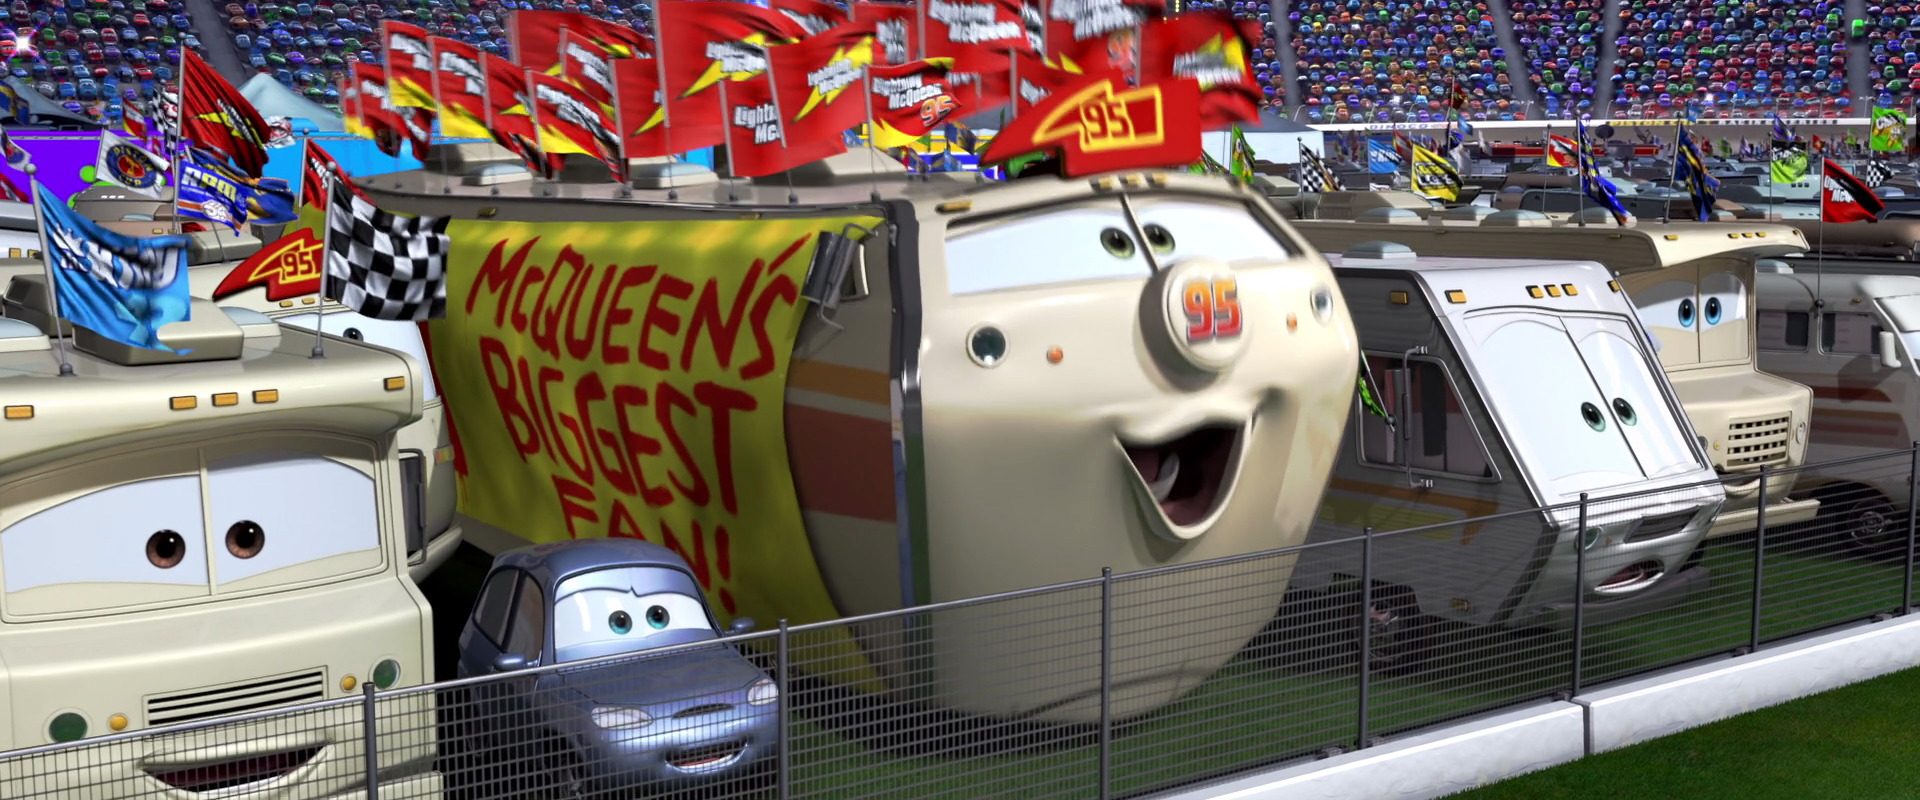 Disney Cars 1 Piston Cup Race Fans Bed And Breakfast